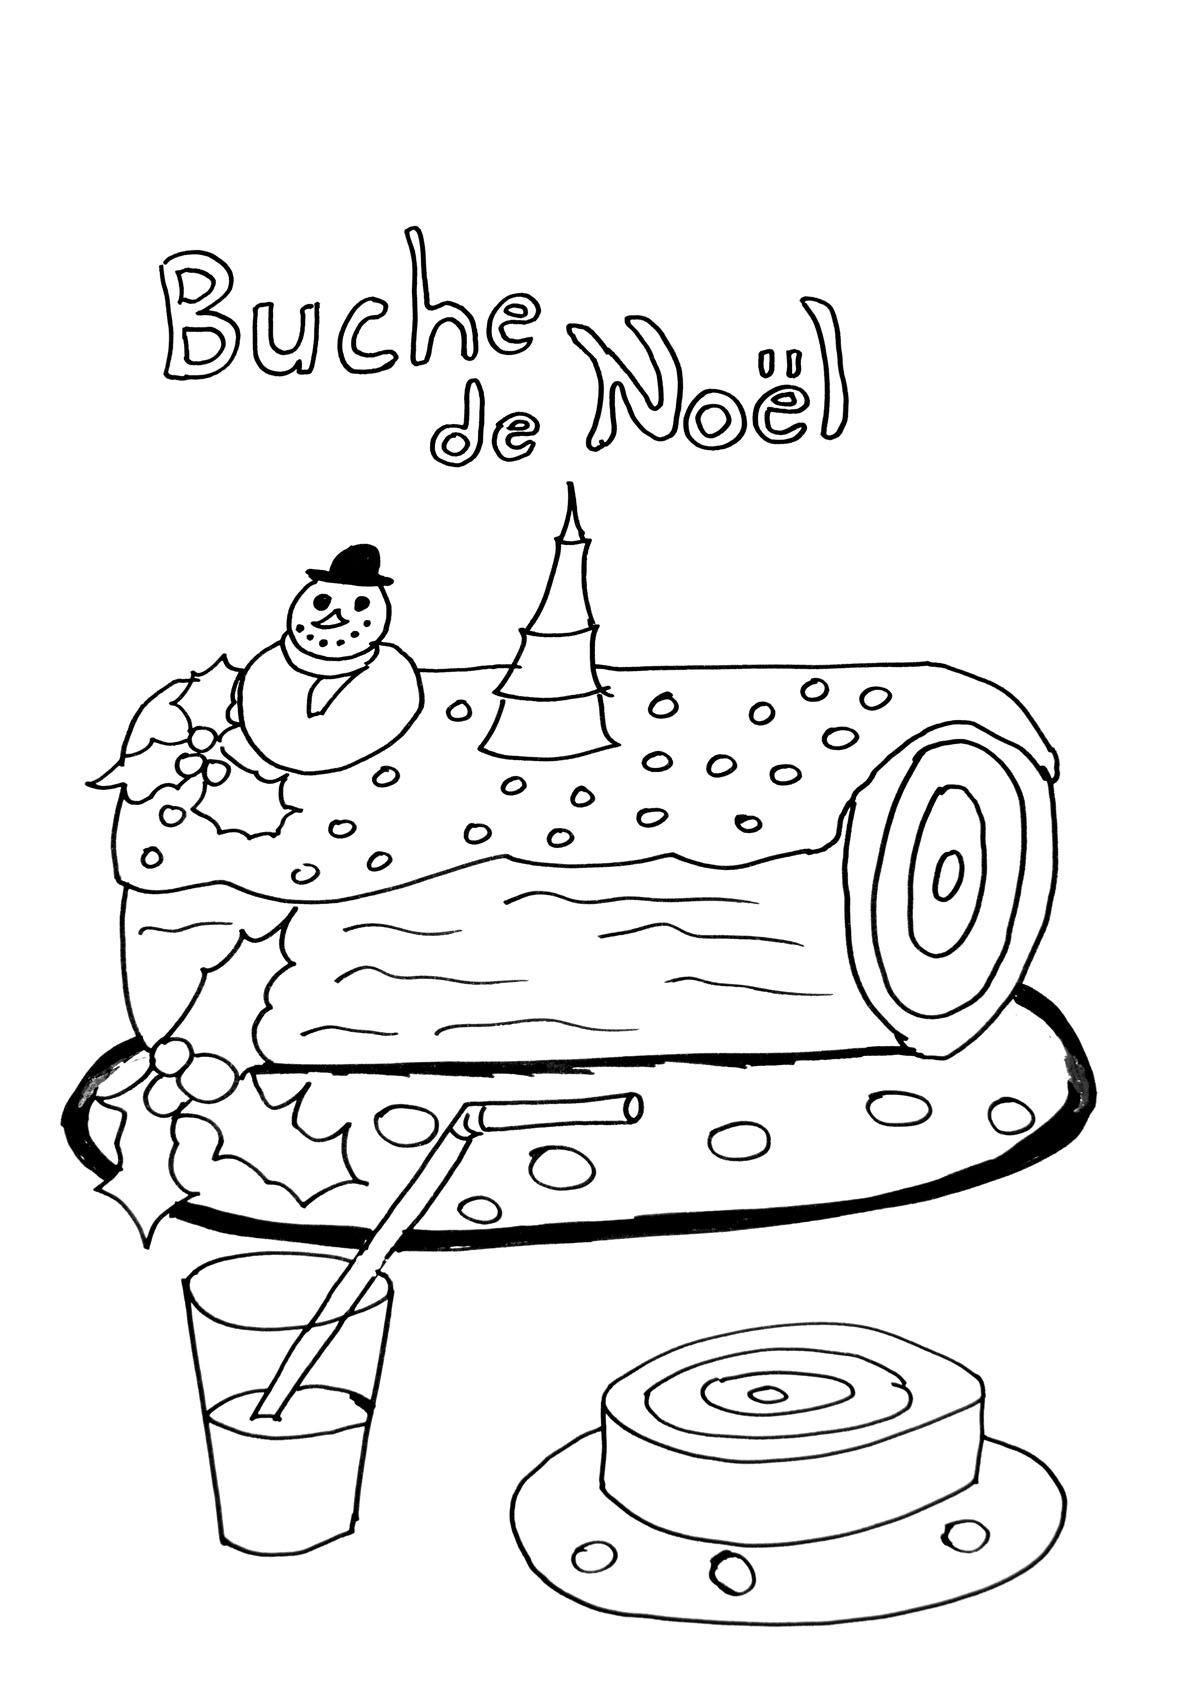 Buche de noel coloriages de no l coloriages enfants biboon - Coloriage village de noel ...